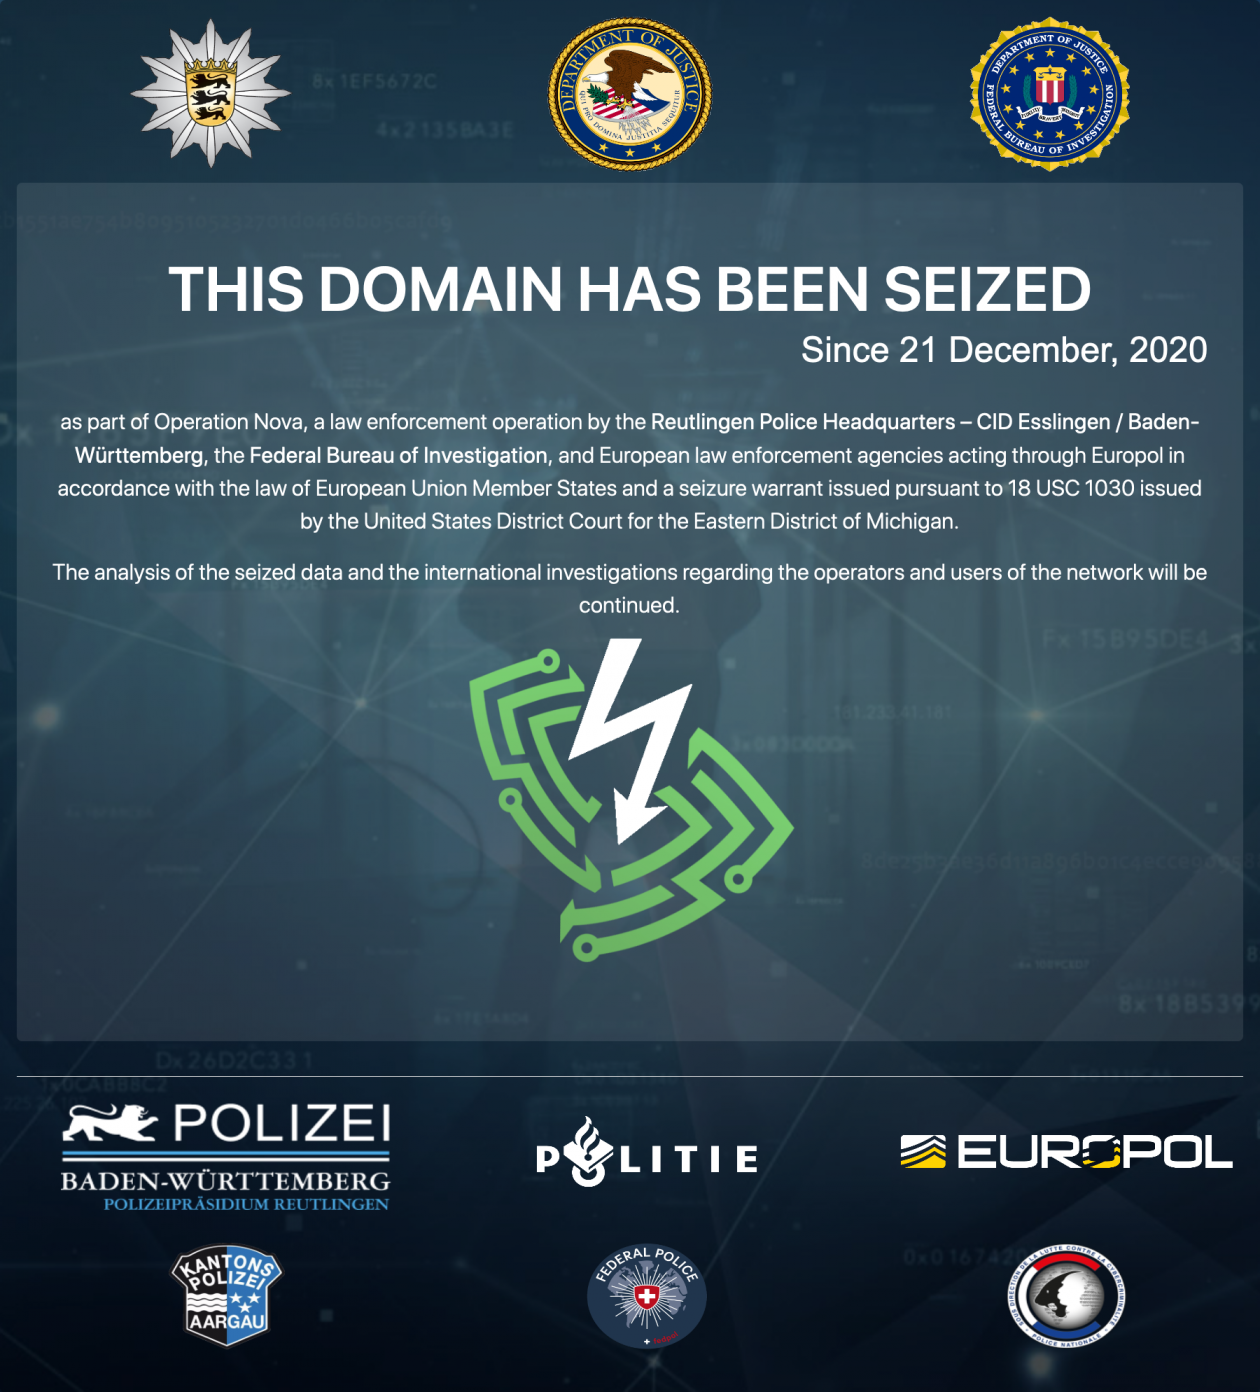 Bulletproof VPN services took down in a global police operation